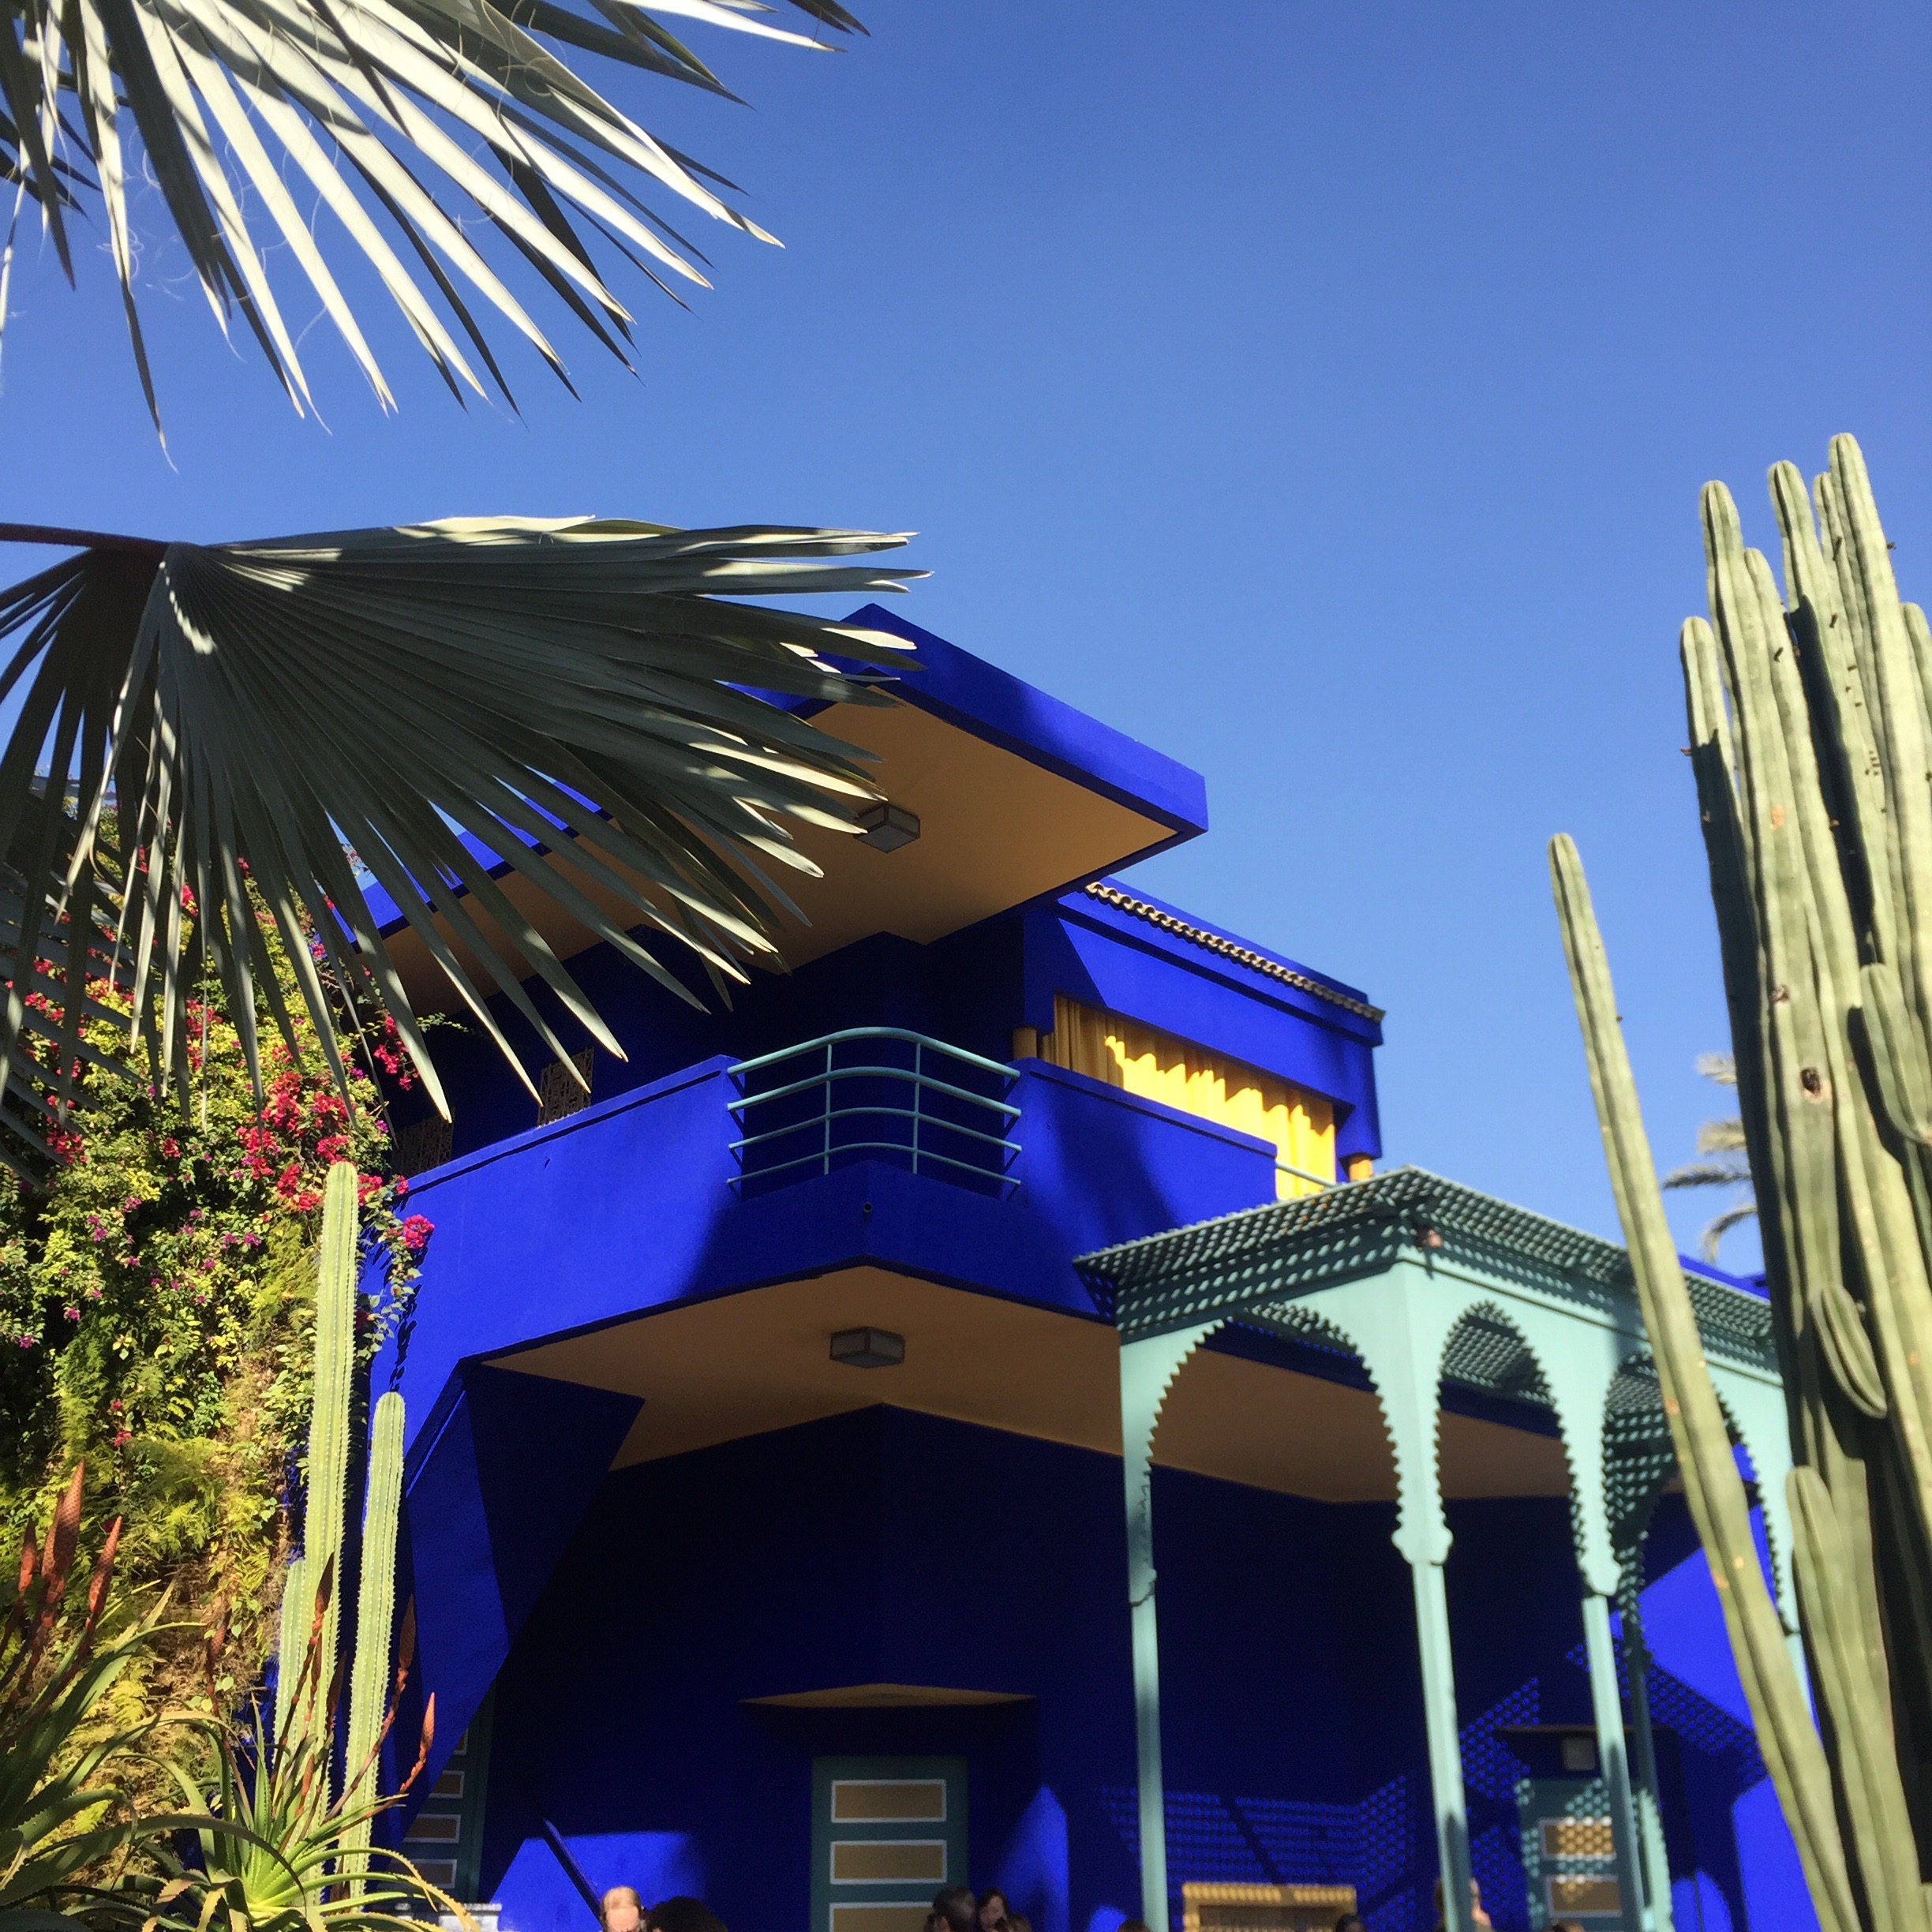 The Jardins Majorelle in Marrakech where designer Yves Saint Laurent's ashes are spread. This blue is called  bleu Majorelle .